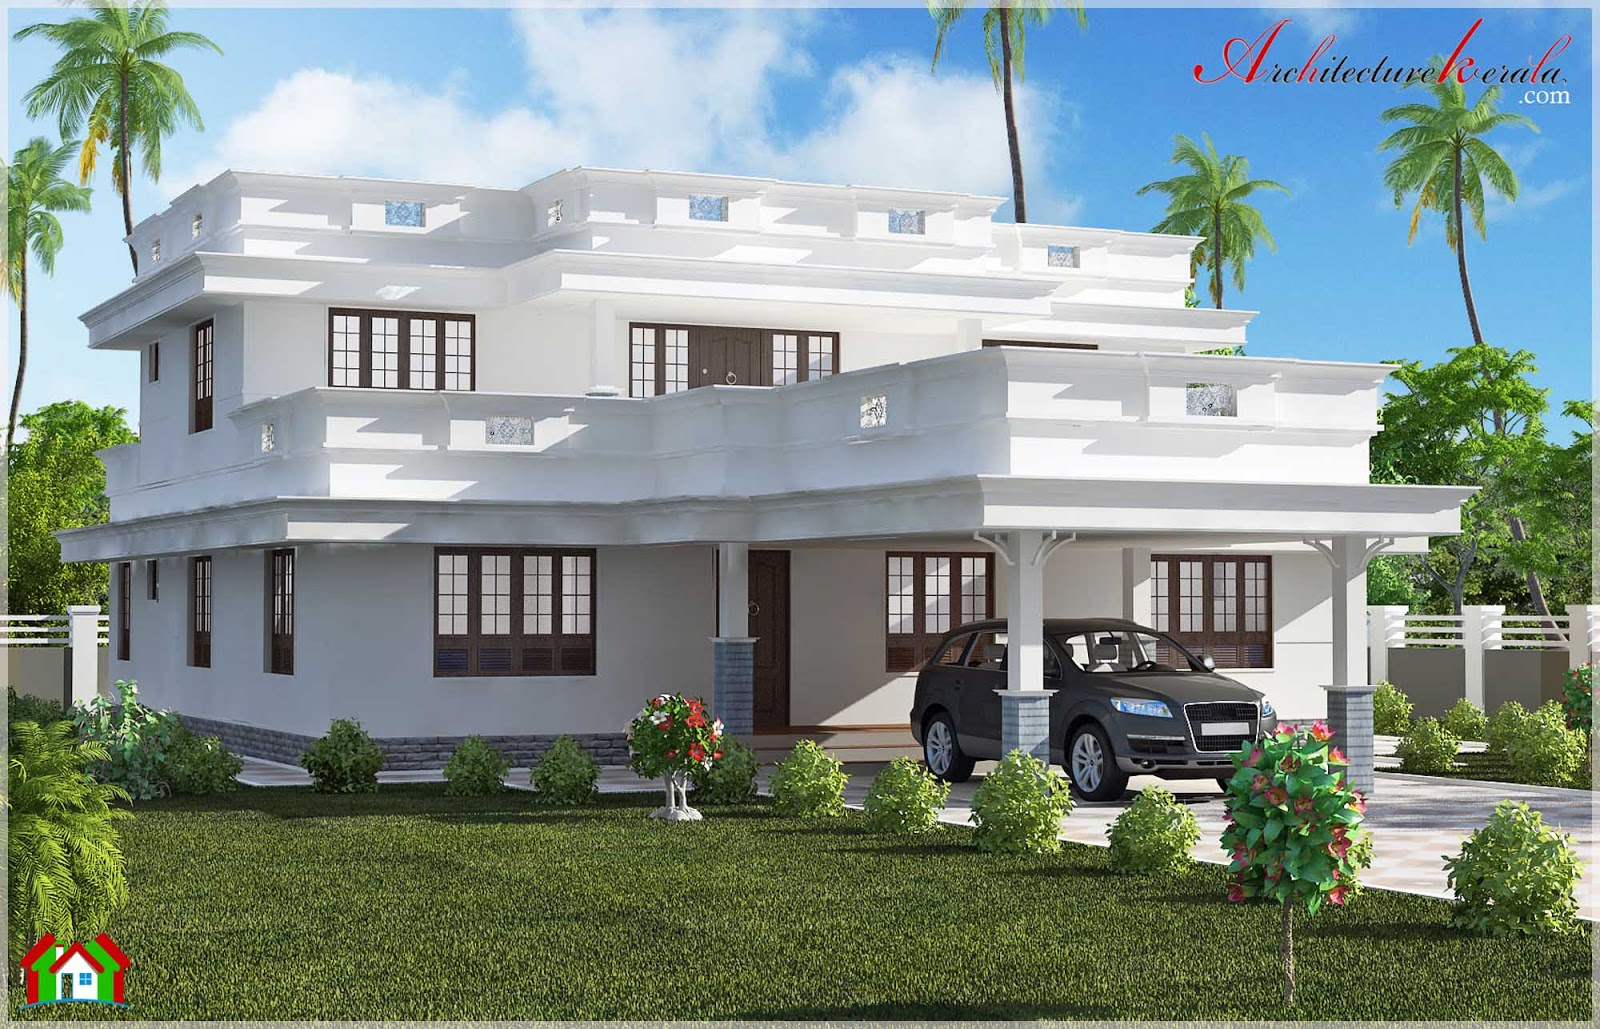 Beautiful flat roof home design architecture kerala for Home designs kerala architects